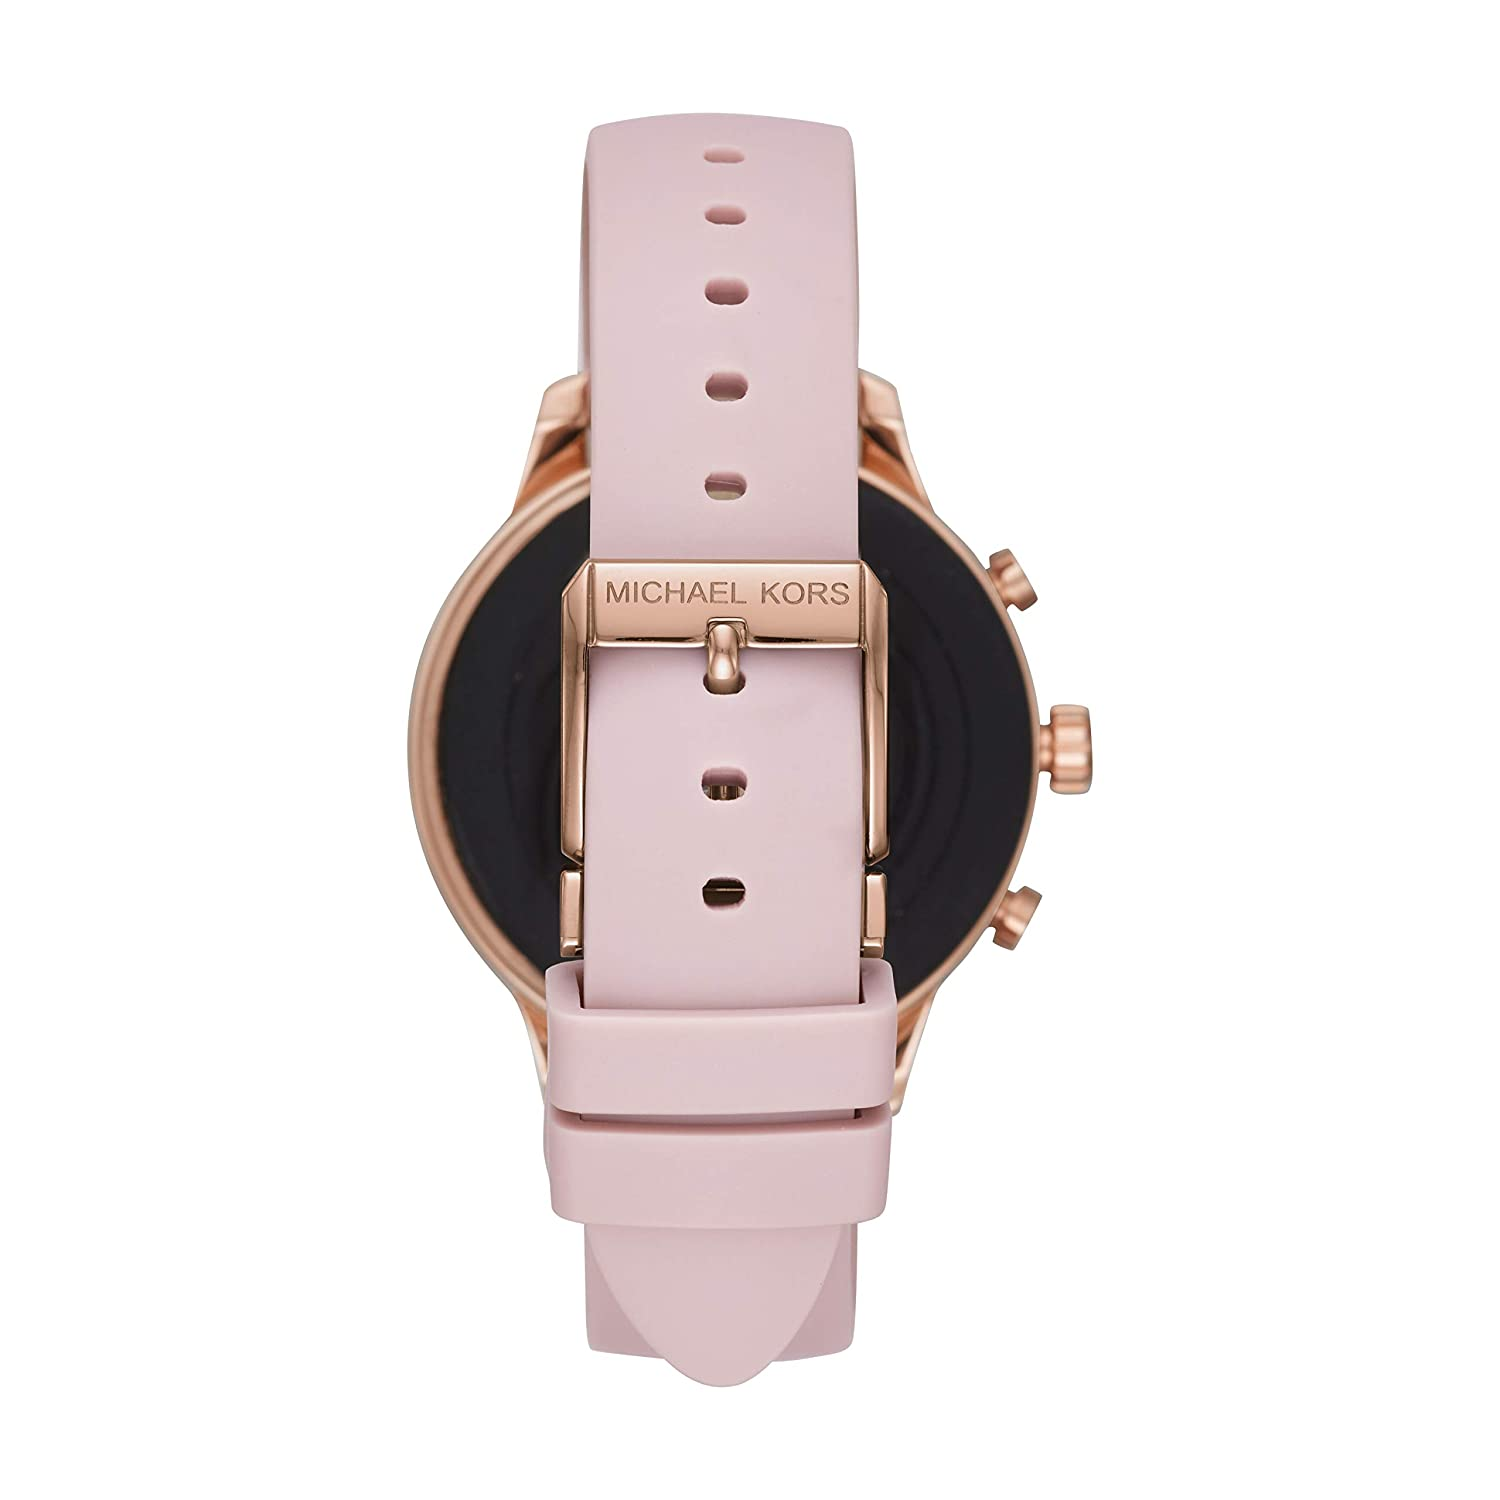 c6005b3f3931 Amazon.com  Michael Kors Women s Access Runway Stainless Steel Silicone  Smart Watch